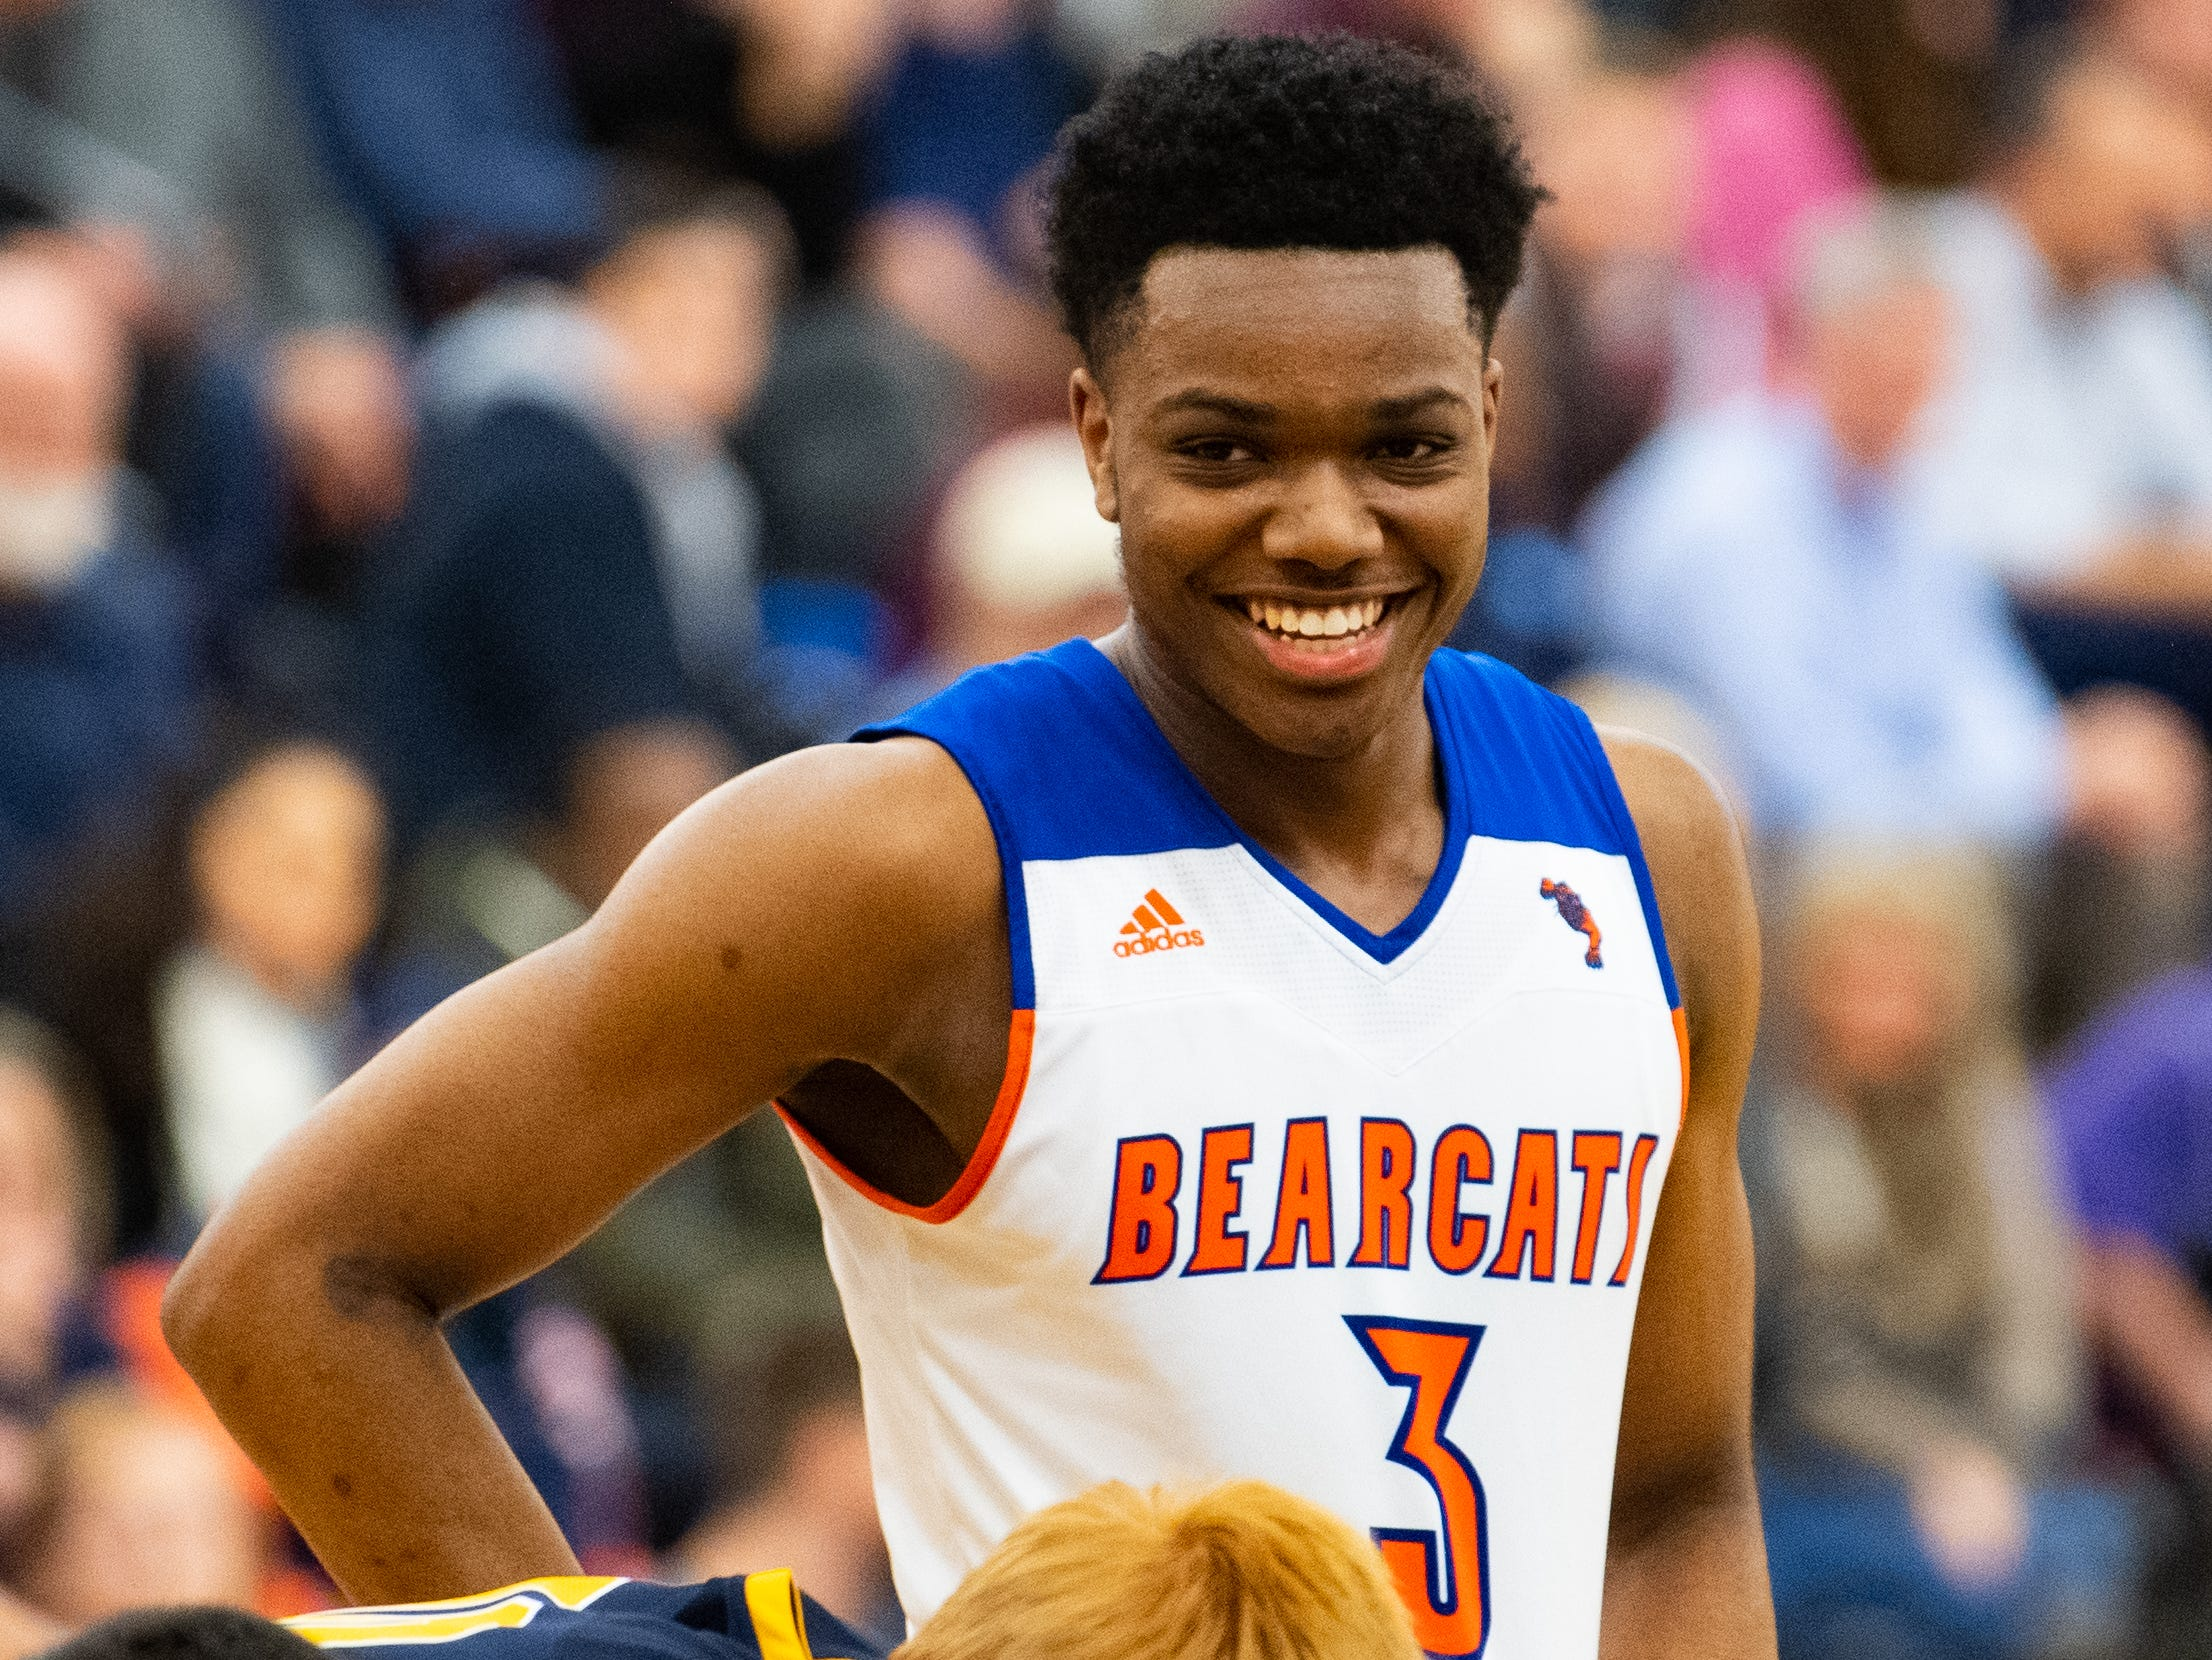 Clovis Gallon Jr. (3) smiles as the game comes to an end during the YAIAA boys' basketball semifinals between York High and Littlestown, Wednesday, February 13, 2019 at Red Lion Area High School. The Bearcats defeated the Thunderbolts 74 to 51.